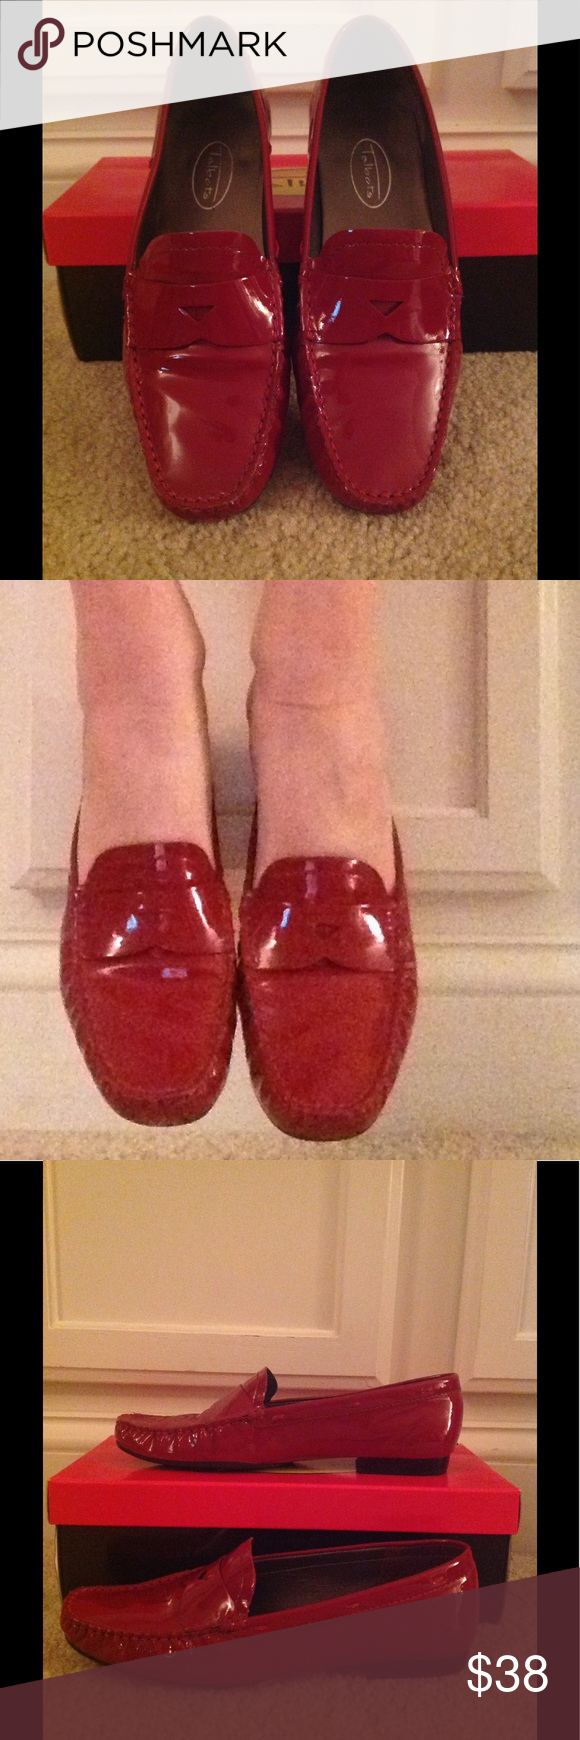 Talbots Red Patent Penny Loafers Talbots red patent leather penny loafers. EUC, made in Brazil Talbots Shoes Flats & Loafers